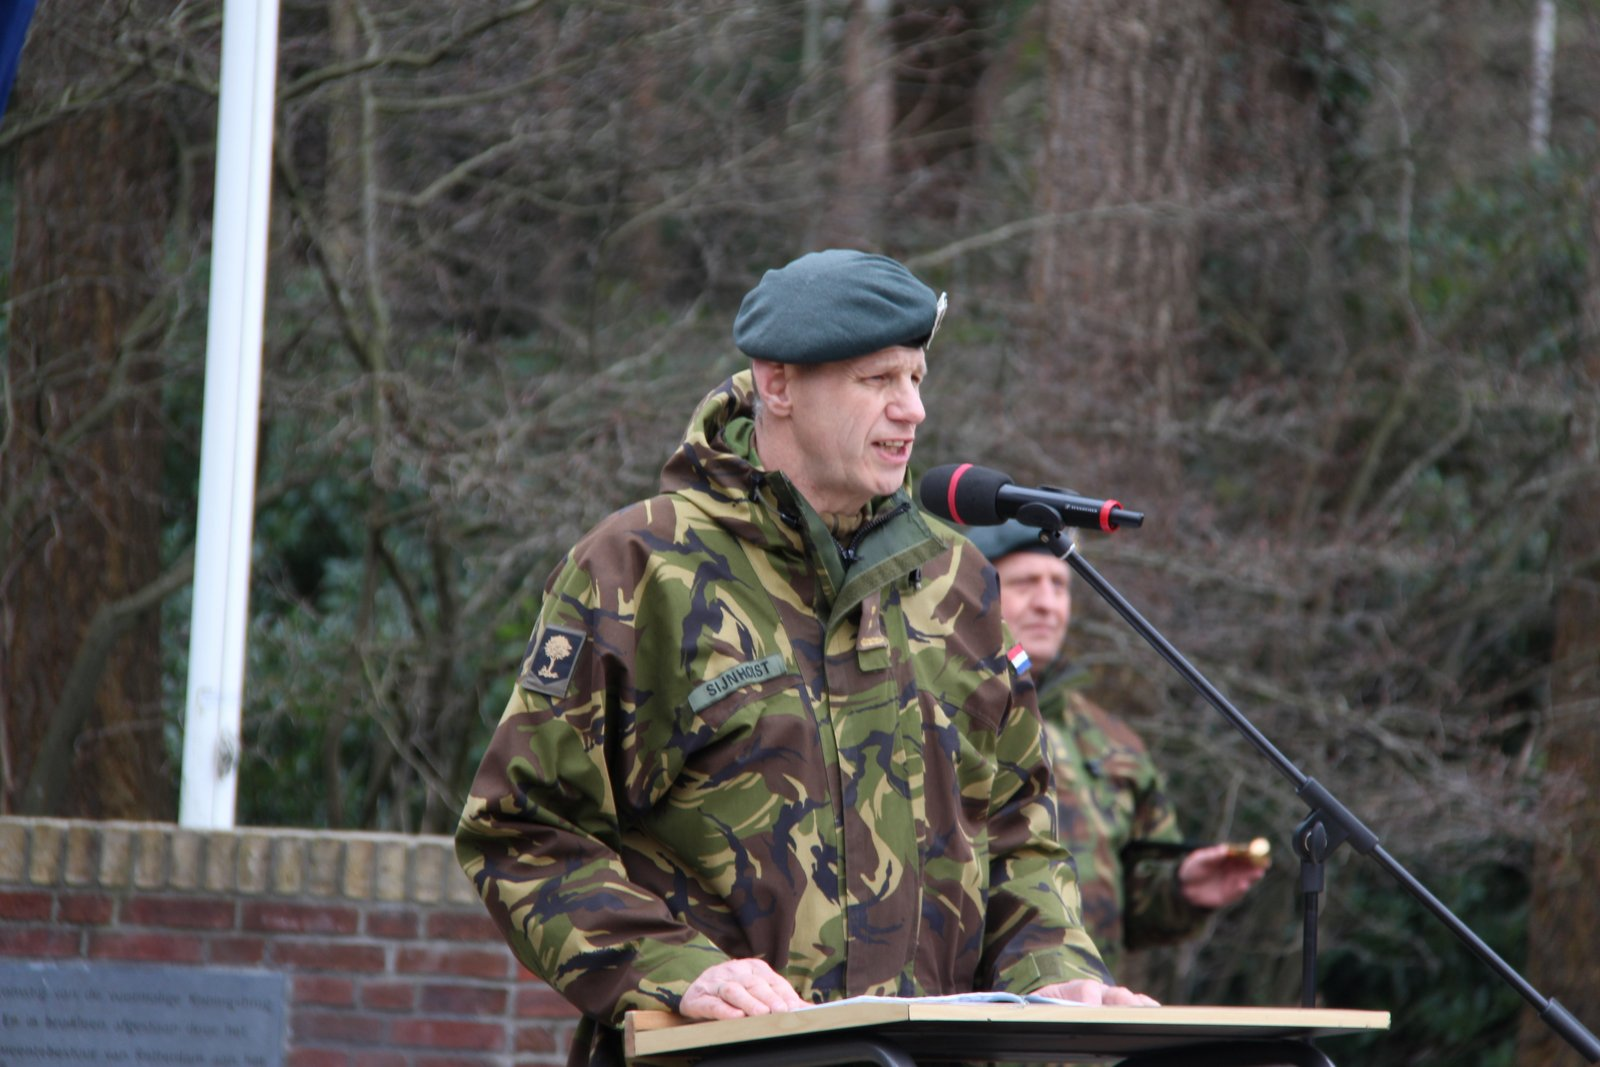 regiment_142_jaar_20160219_2017794563